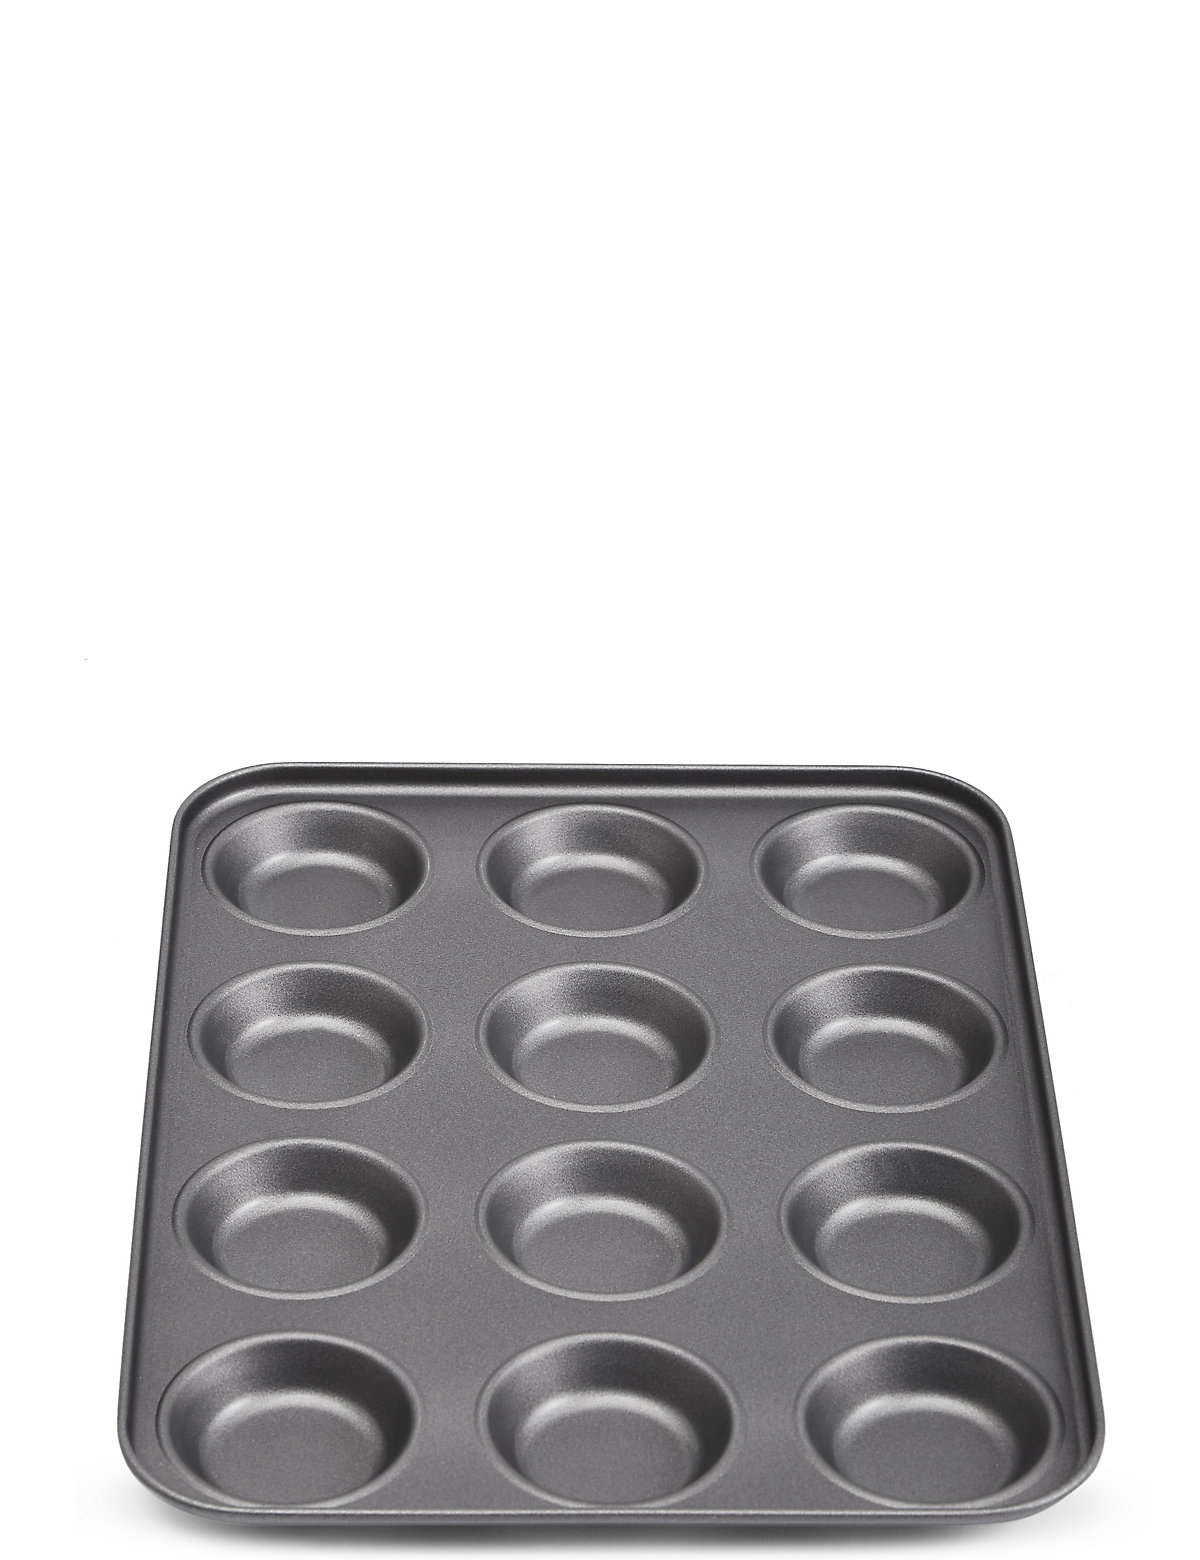 Image of 12 Cup Bun Tray